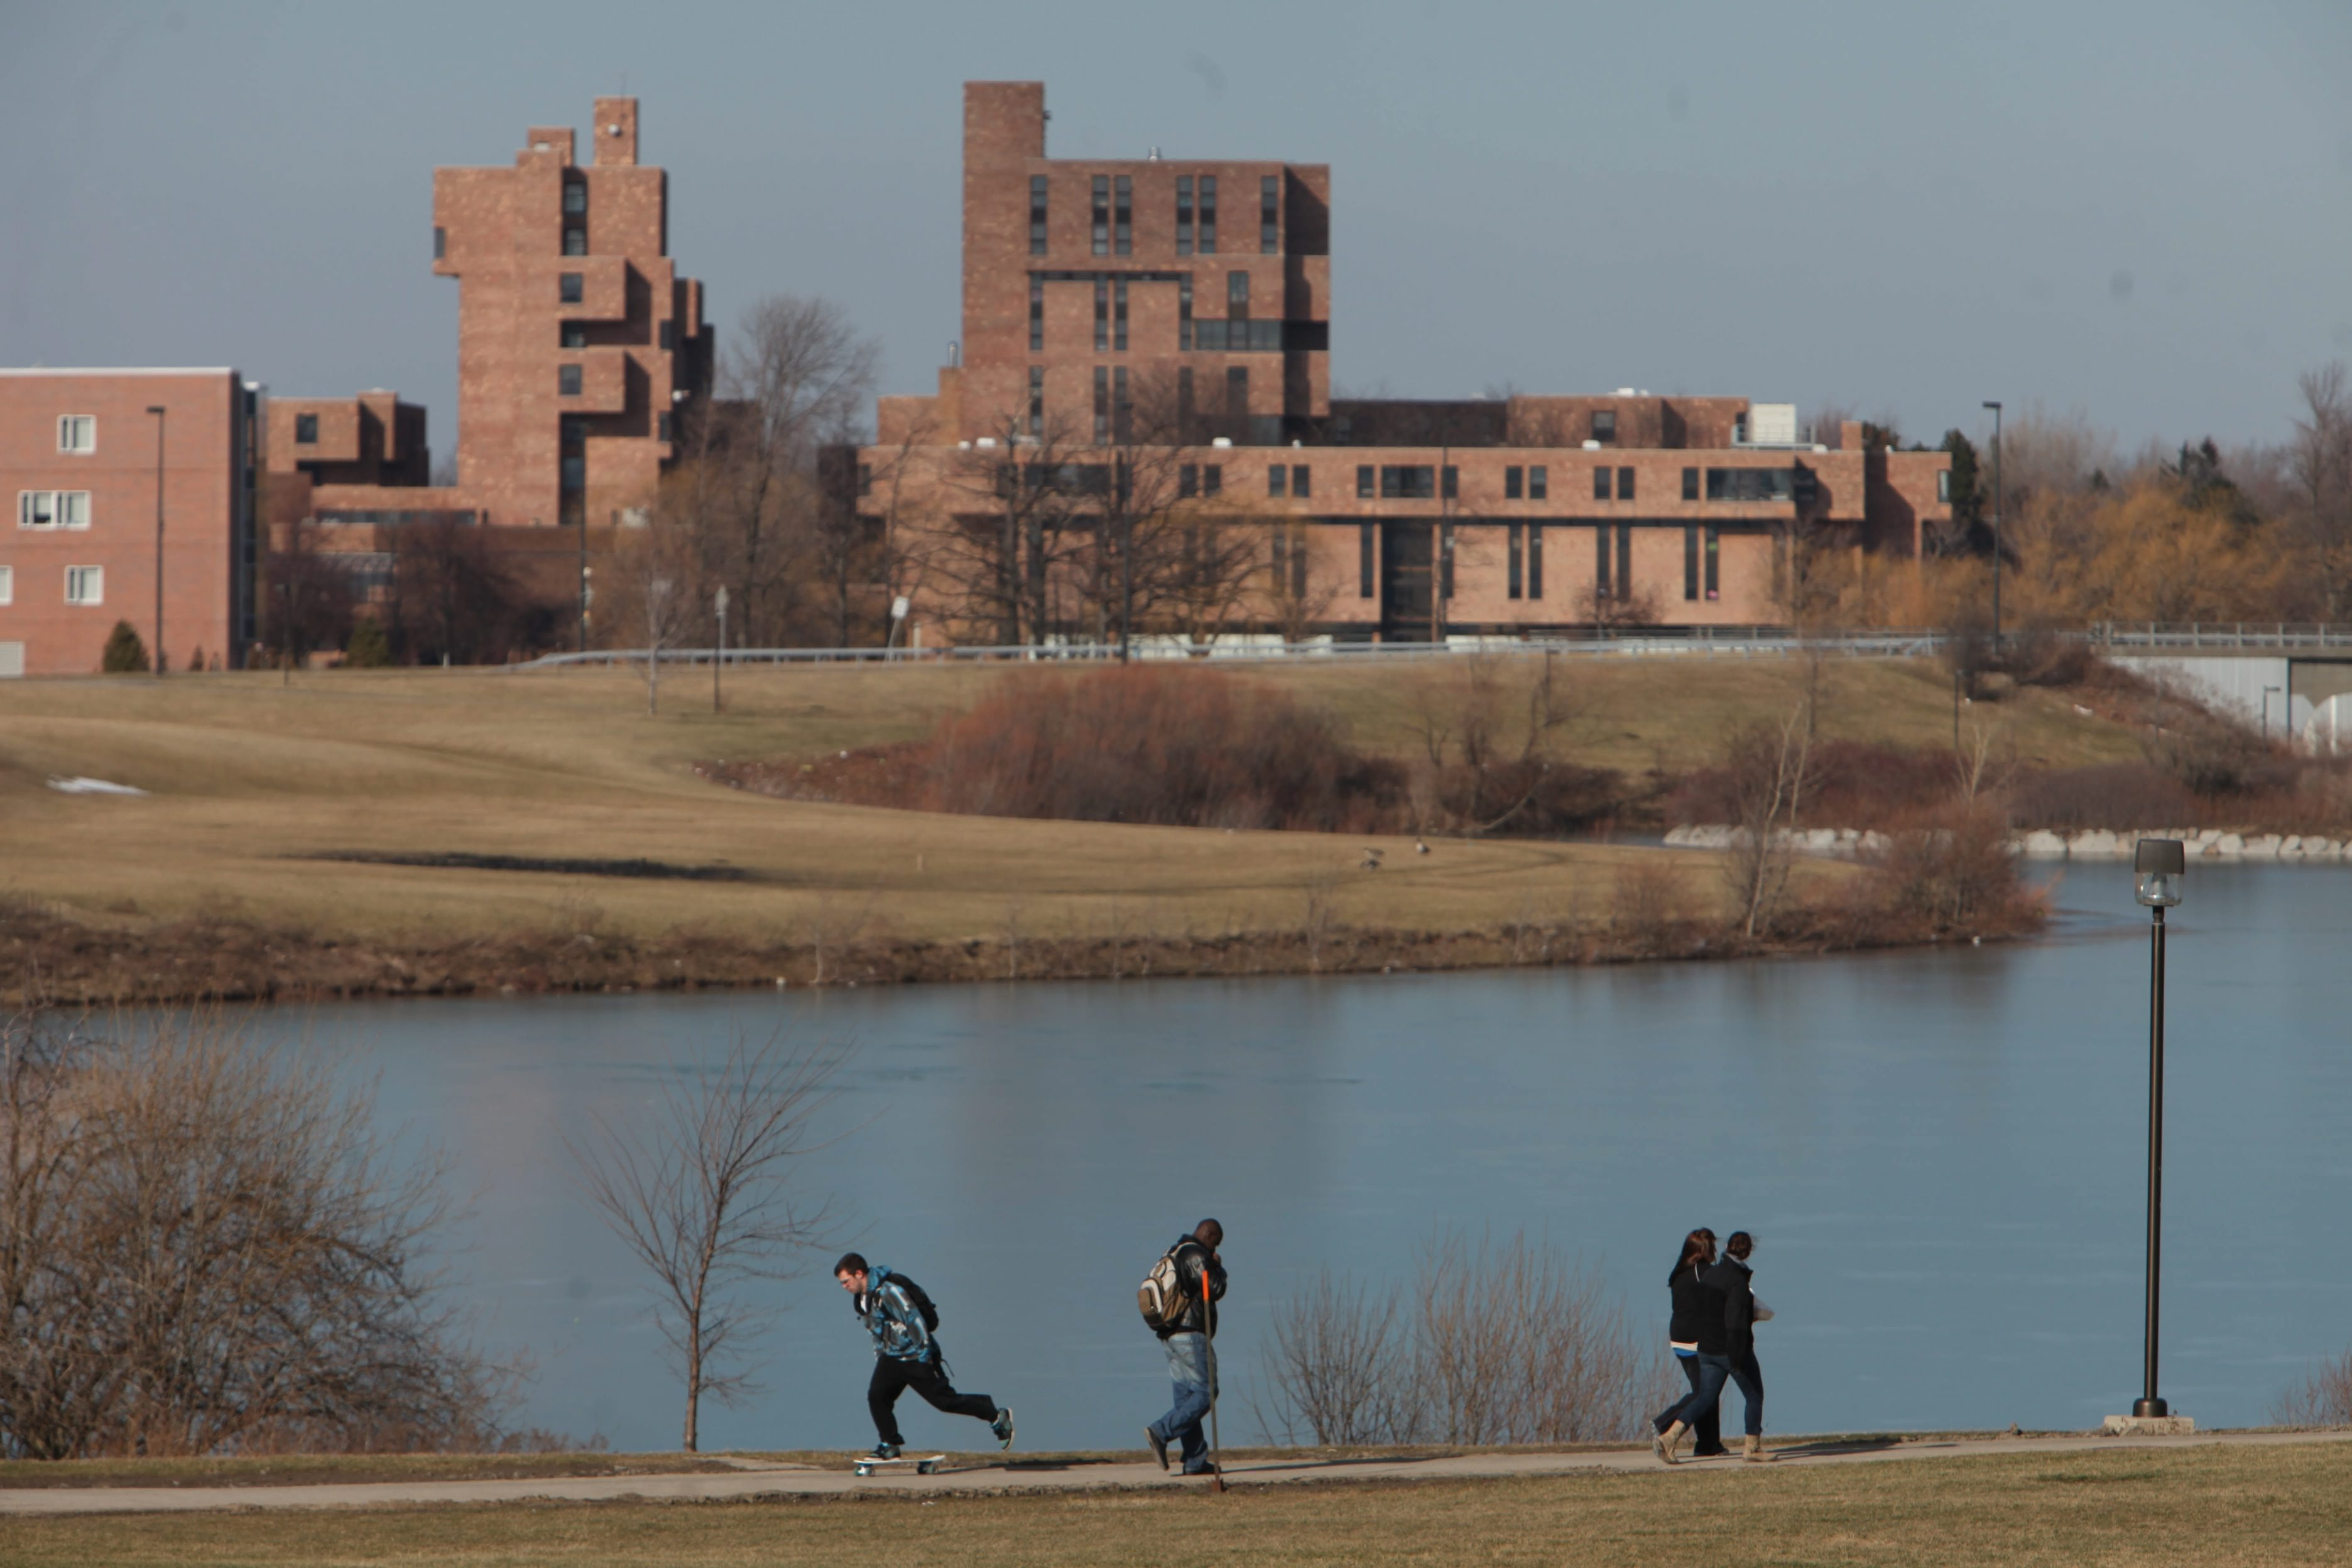 The University at Buffalo has received 25,270 applications for admission this year, up 10 percent from last year. (Sharon Cantillon/News file photo)